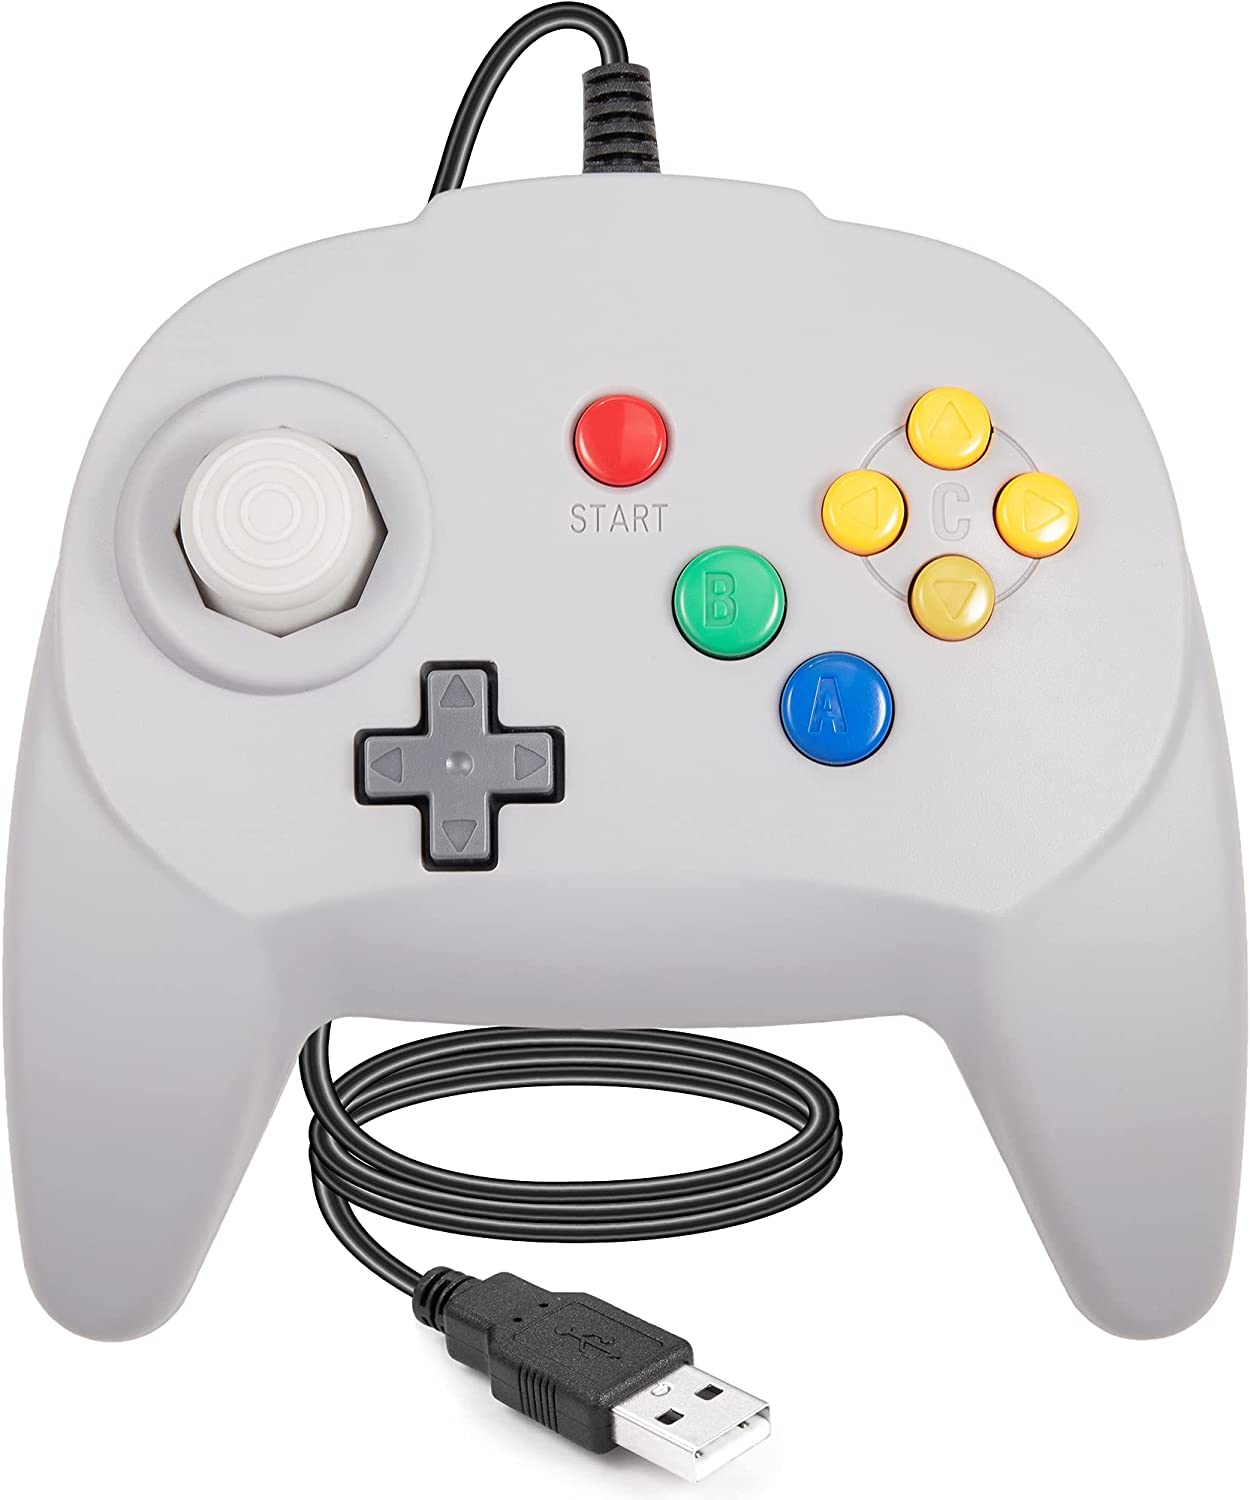 LUXMO PREMIUM Wired USB Controller for N64 Games, Classic USB Gamepads Joystick for Windows PC MAC Raspberry Pi3 (Grey)